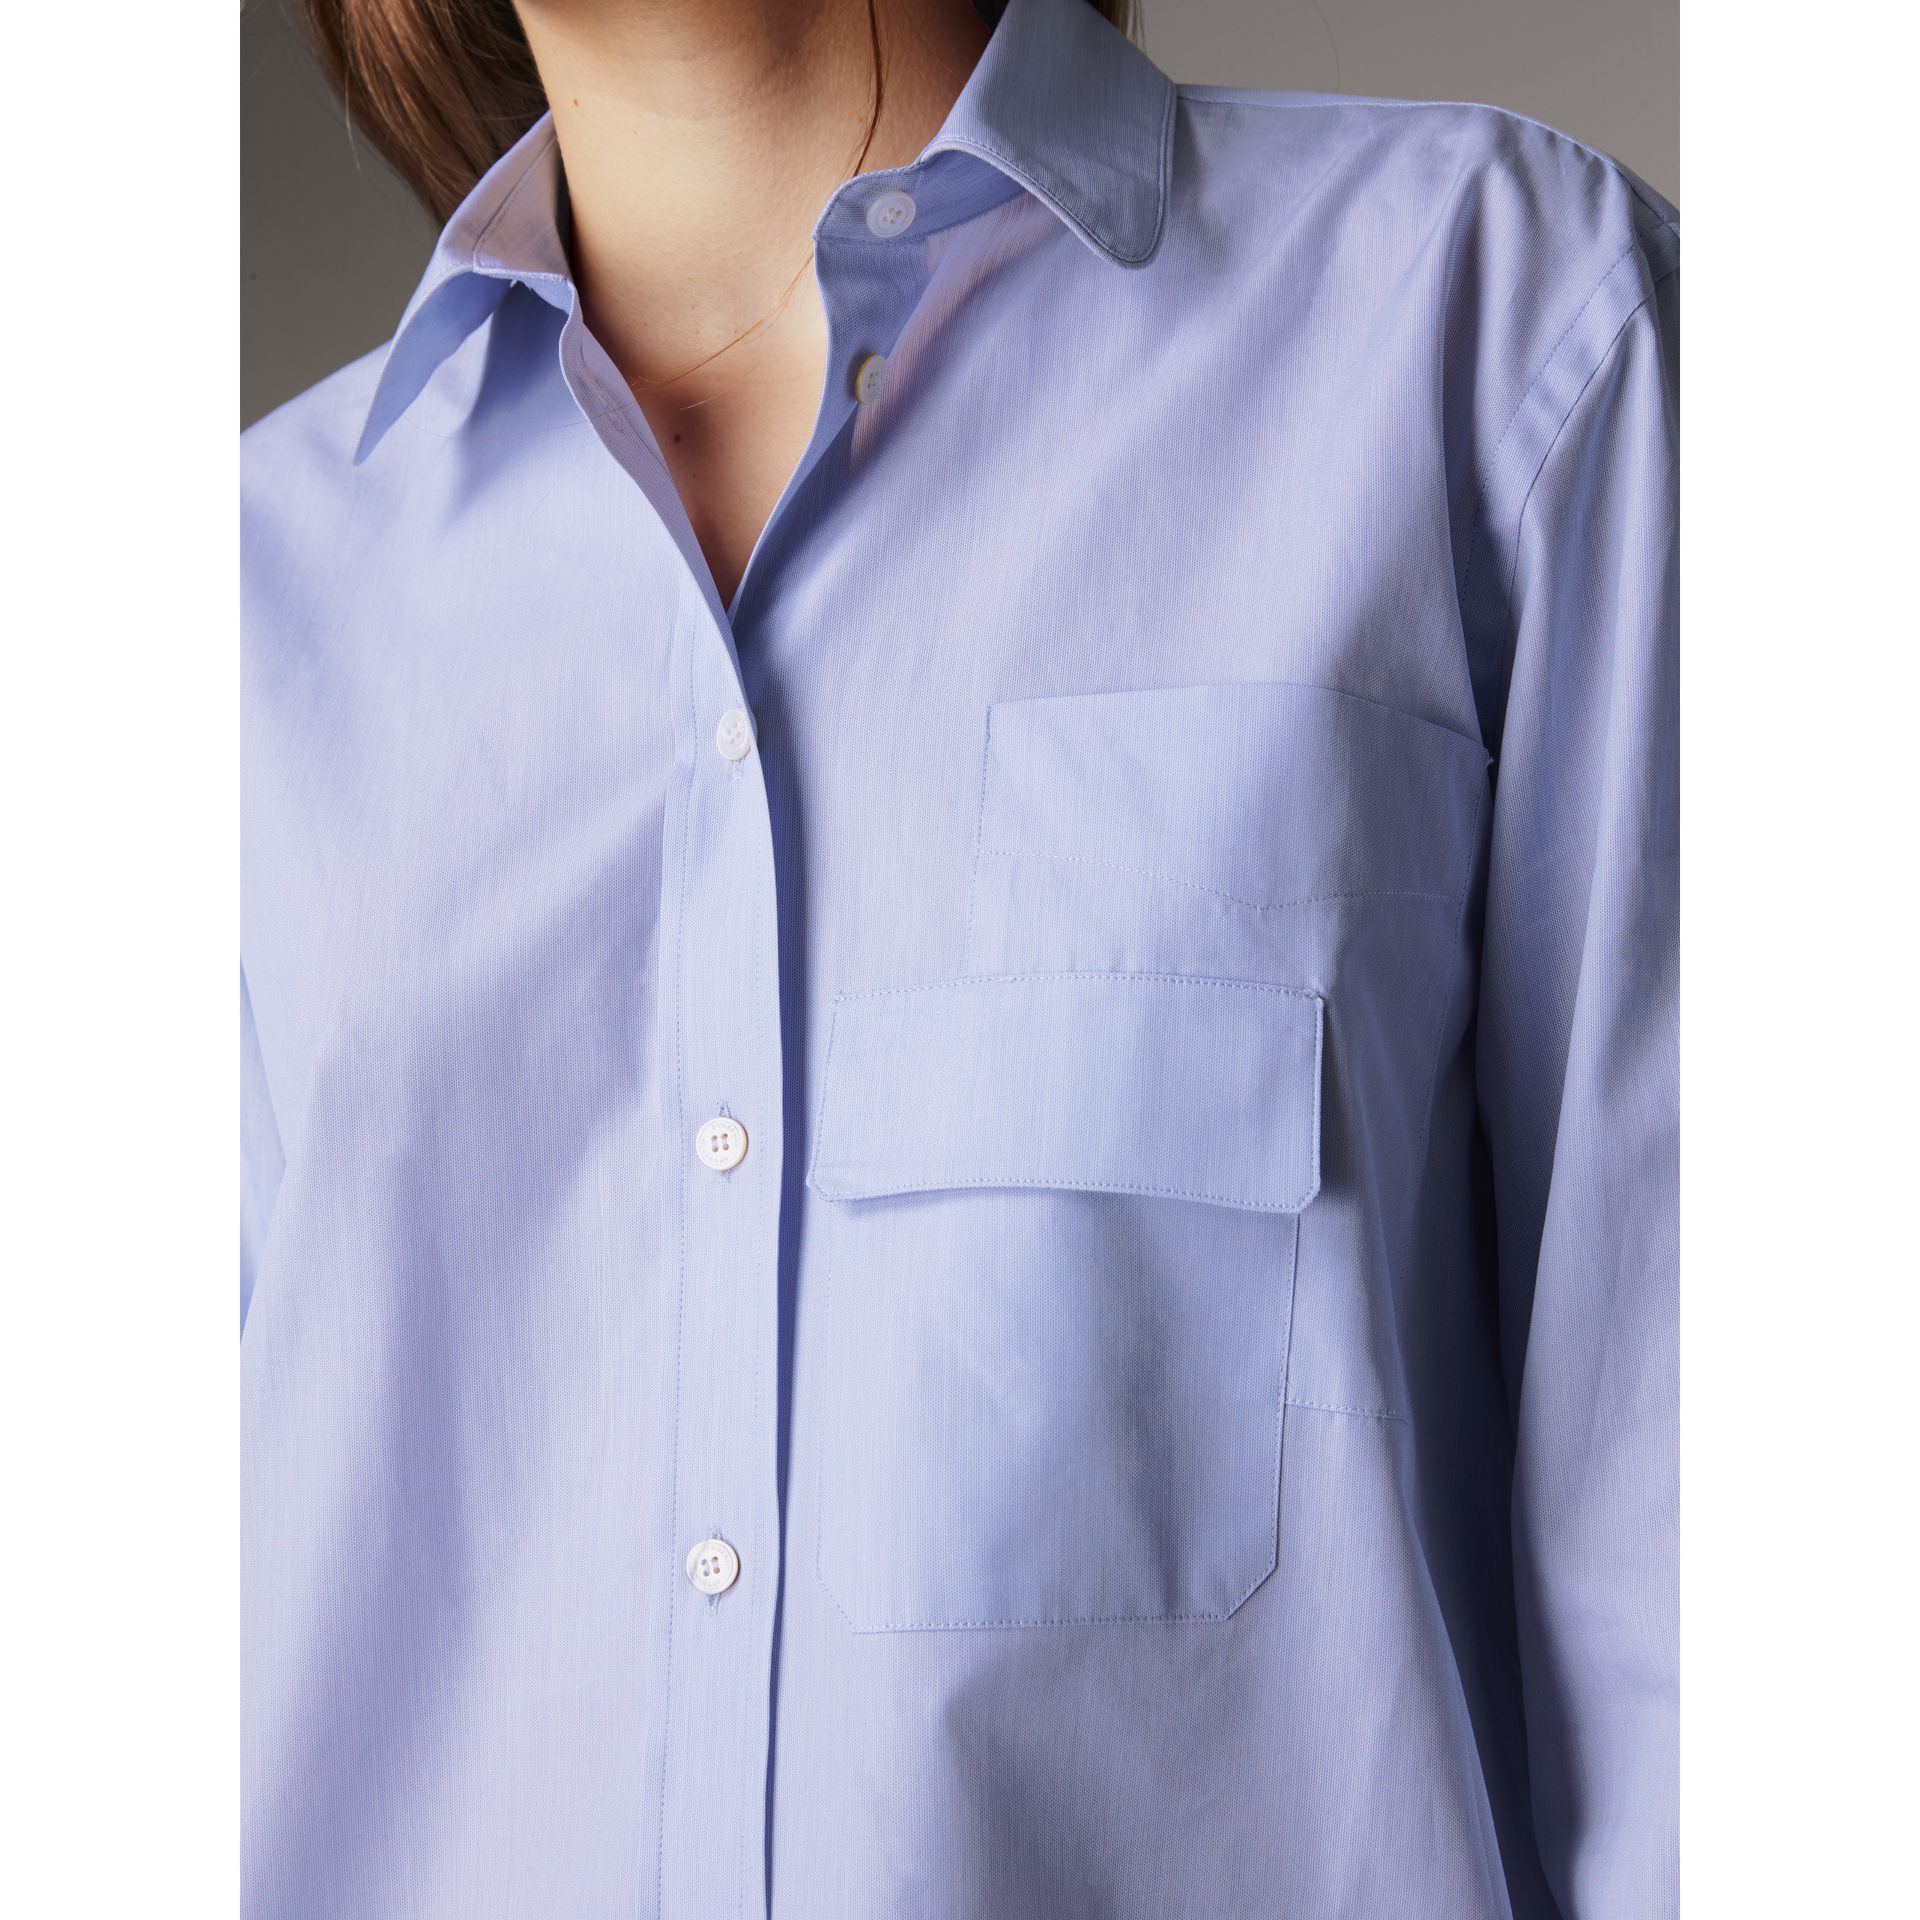 Double Pocket Cotton Oversize Shirt in Pale Blue - Women | Burberry Australia - gallery image 2